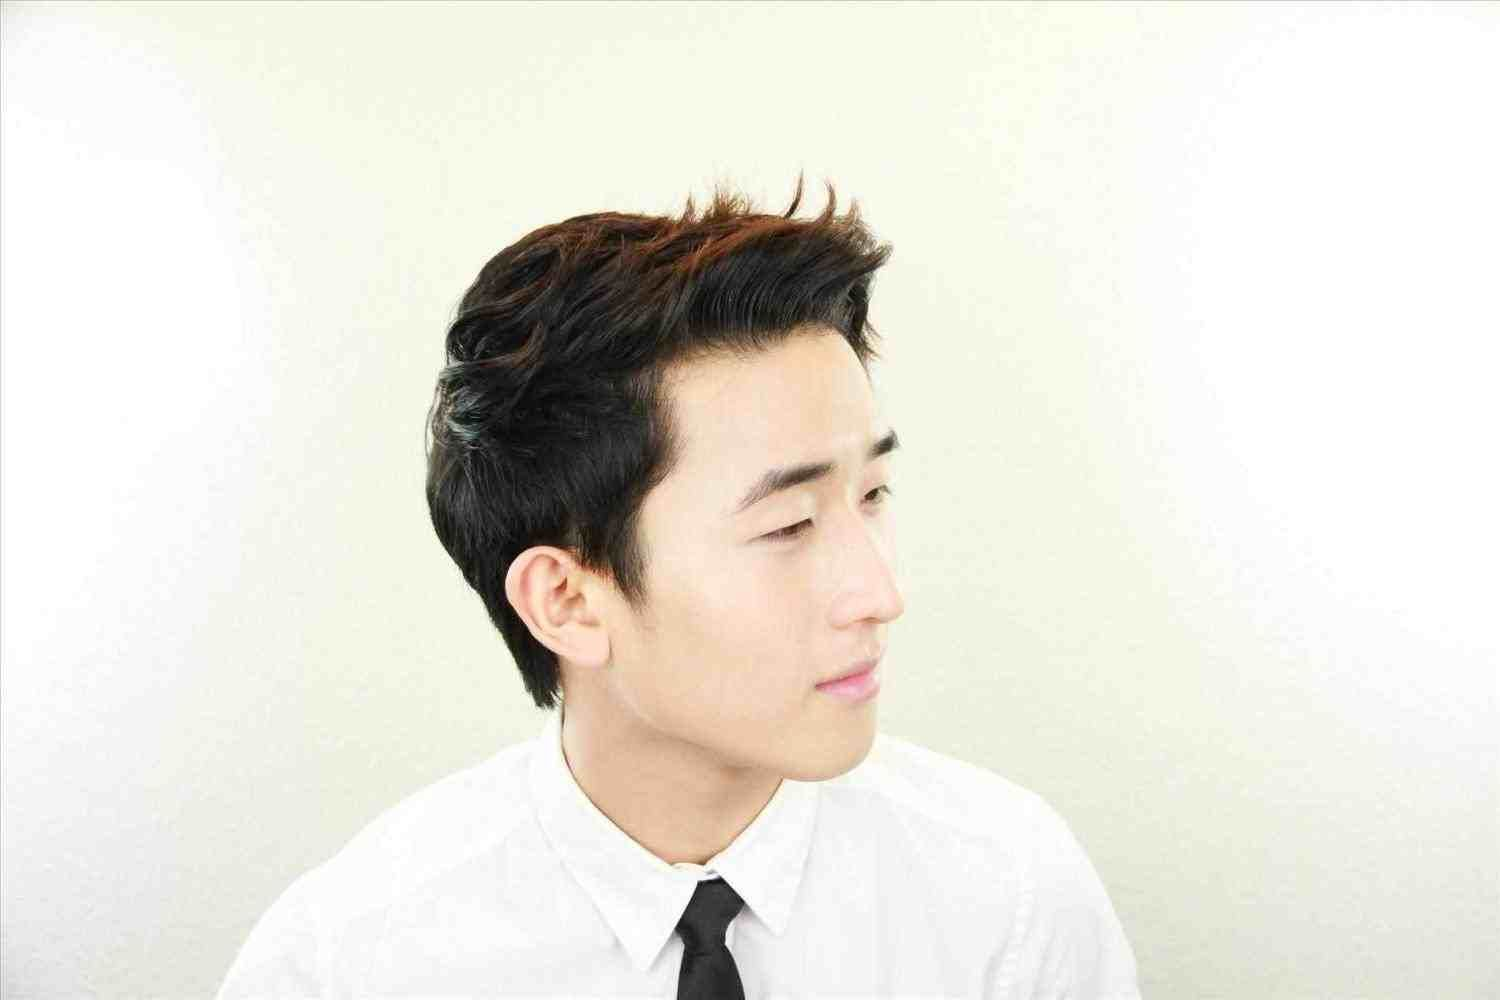 Balayagehair Club Nbspthis Website Is For Sale Nbspbalayagehair Resources And Information Asian Men Hairstyle Hairstyle Gallery Korean Male Hairstyle Short